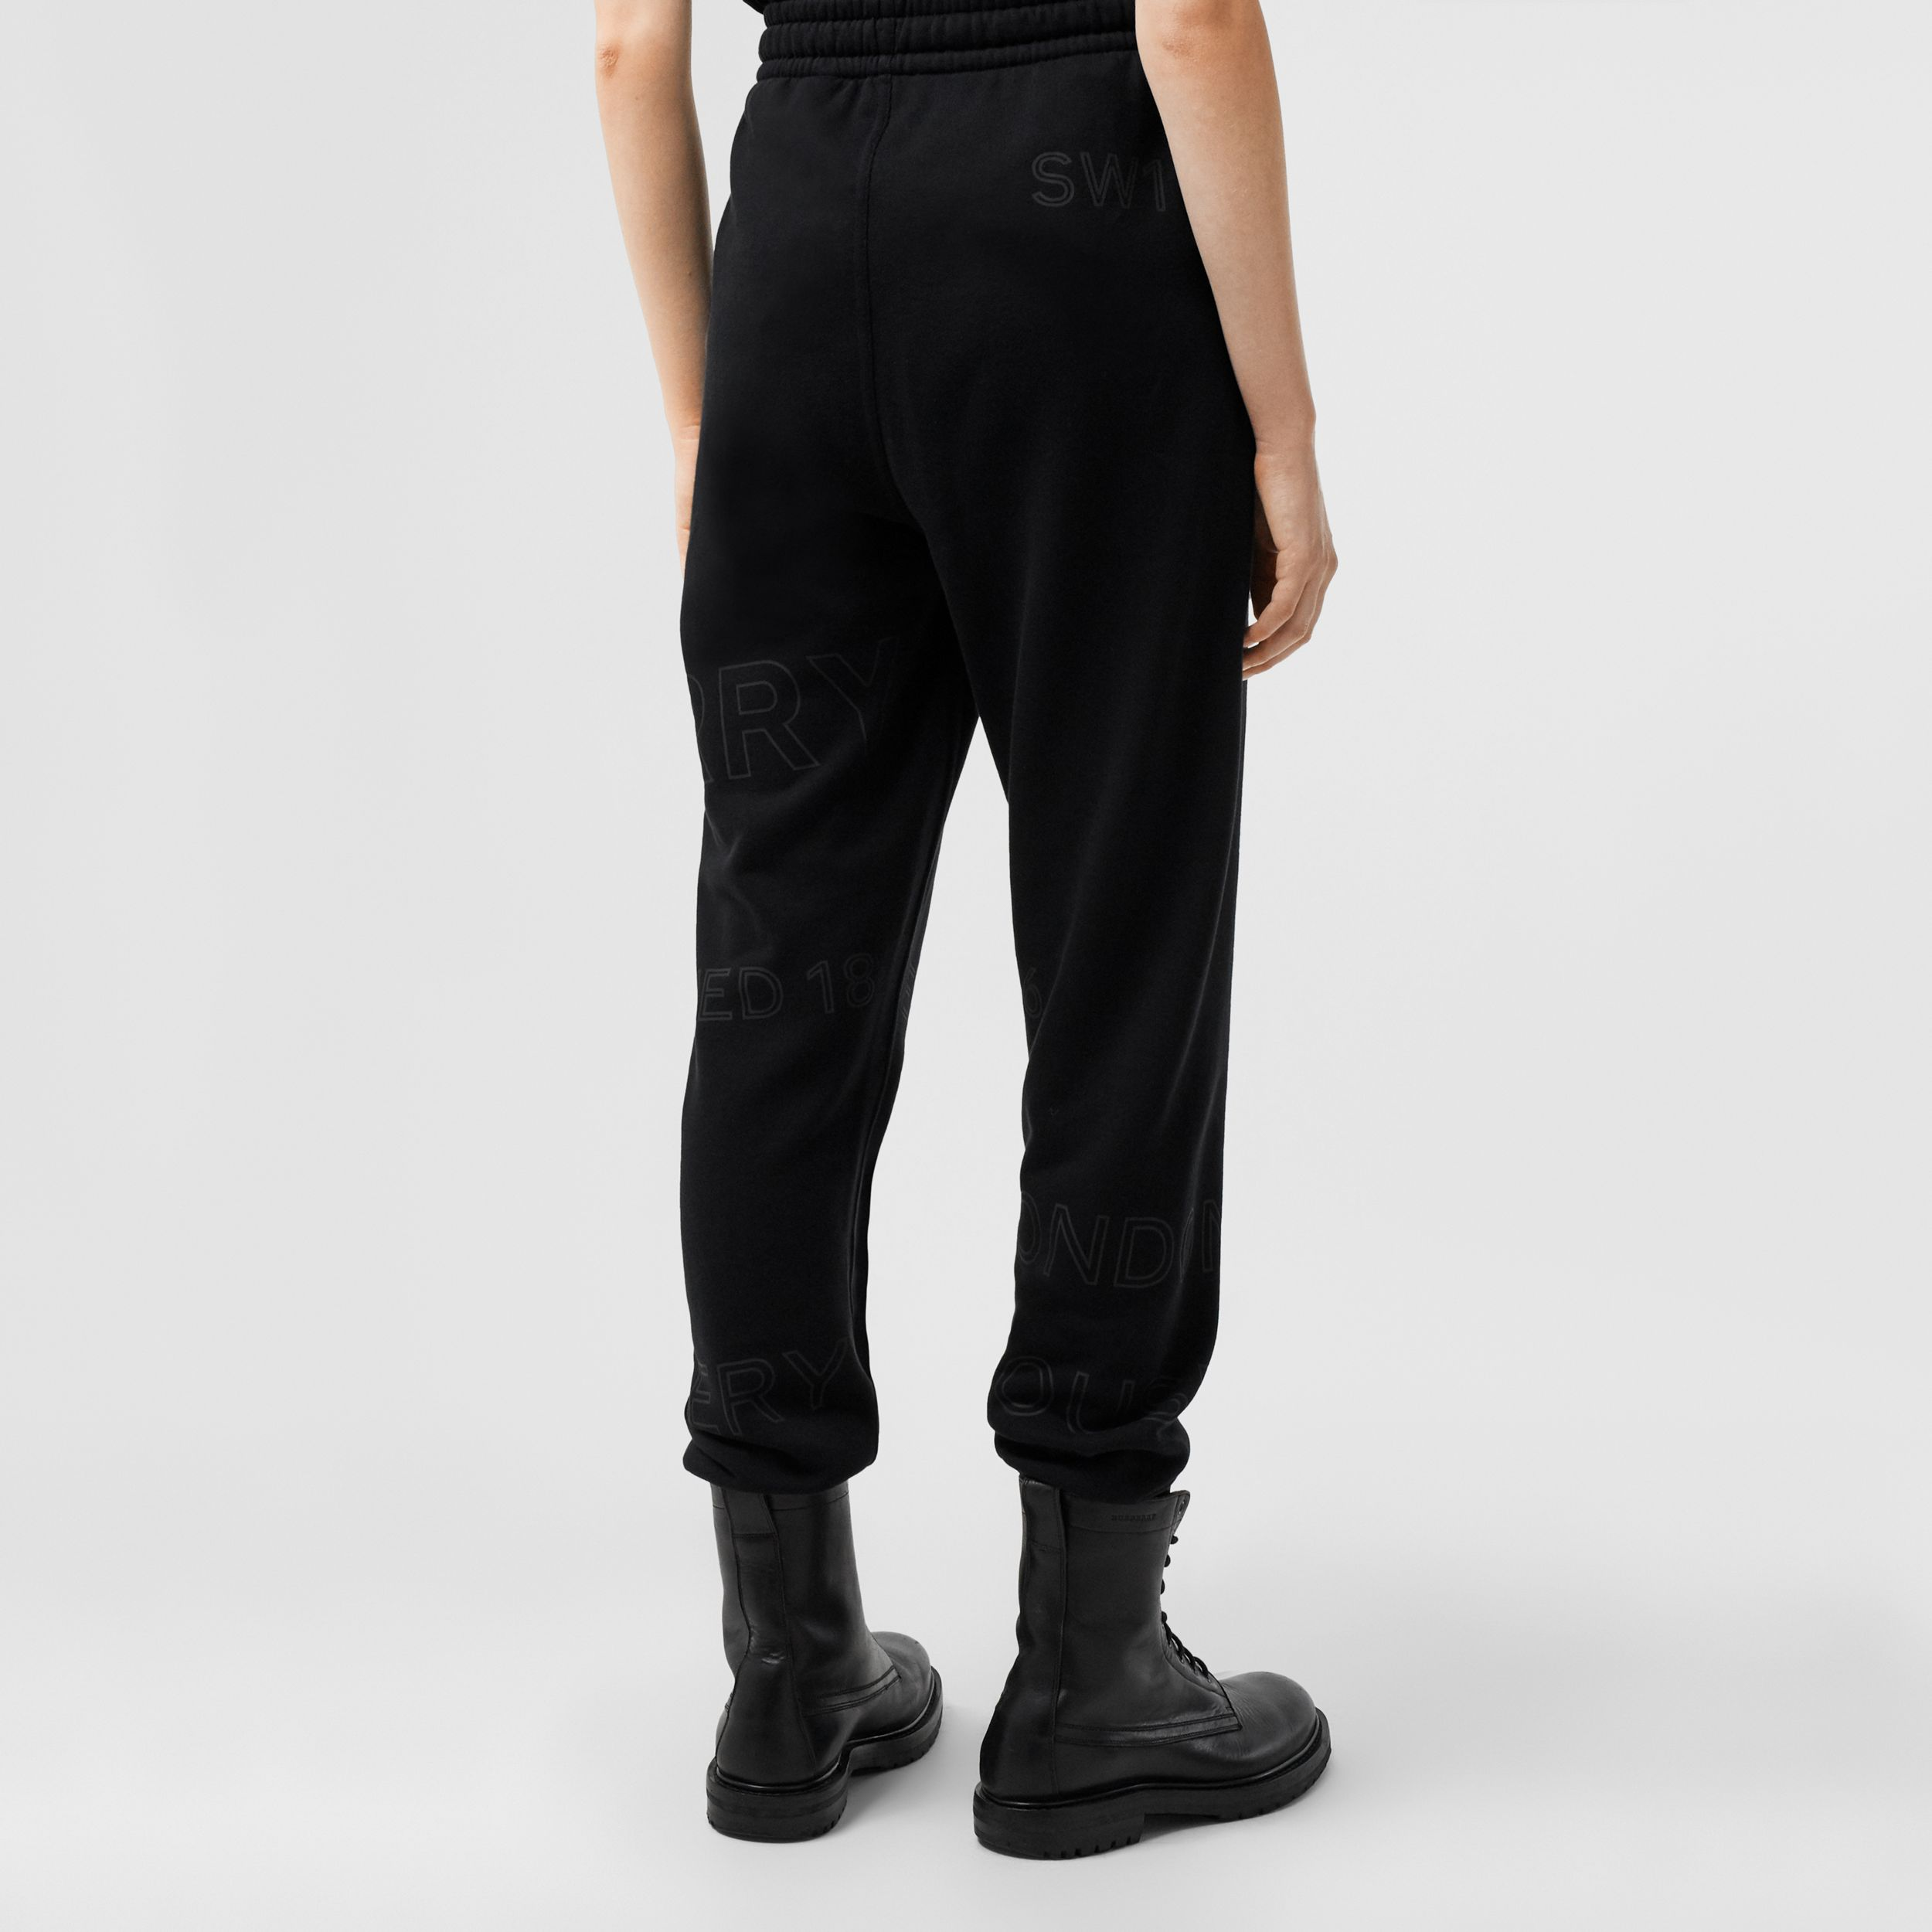 Horseferry Print Cotton Jogging Pants in Black - Women | Burberry United Kingdom - 3